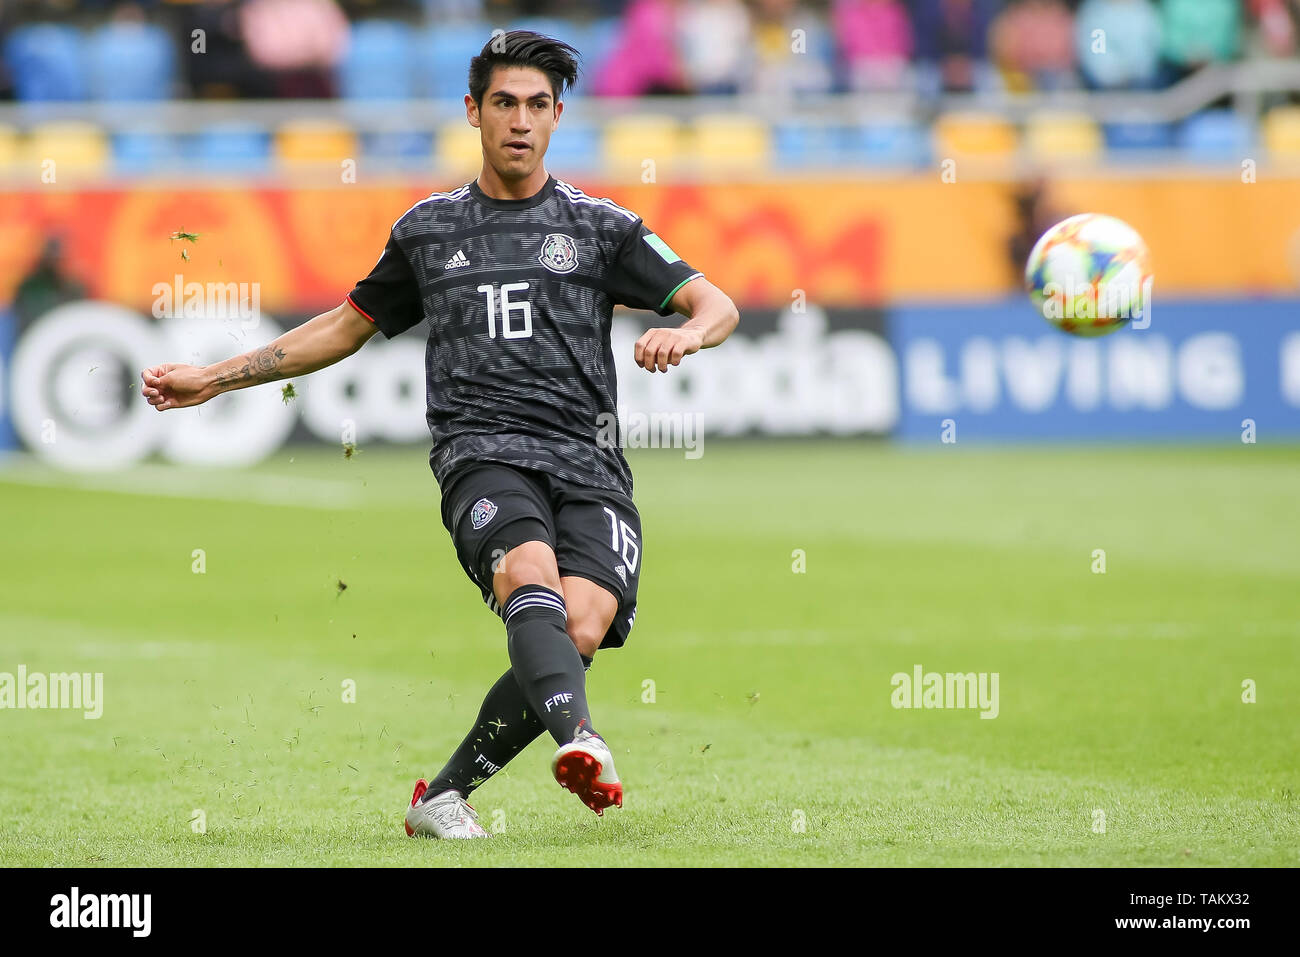 Gdynia Stadium, Gdynia, Poland - 26th May, 2019: Roberto Meraz from Mexico seen in action during FIFA U-20 World Cup match between Mexico and Japan (GROUP B) in Gdynia. (Final score; Mexico 0:3 Japan) - Stock Image